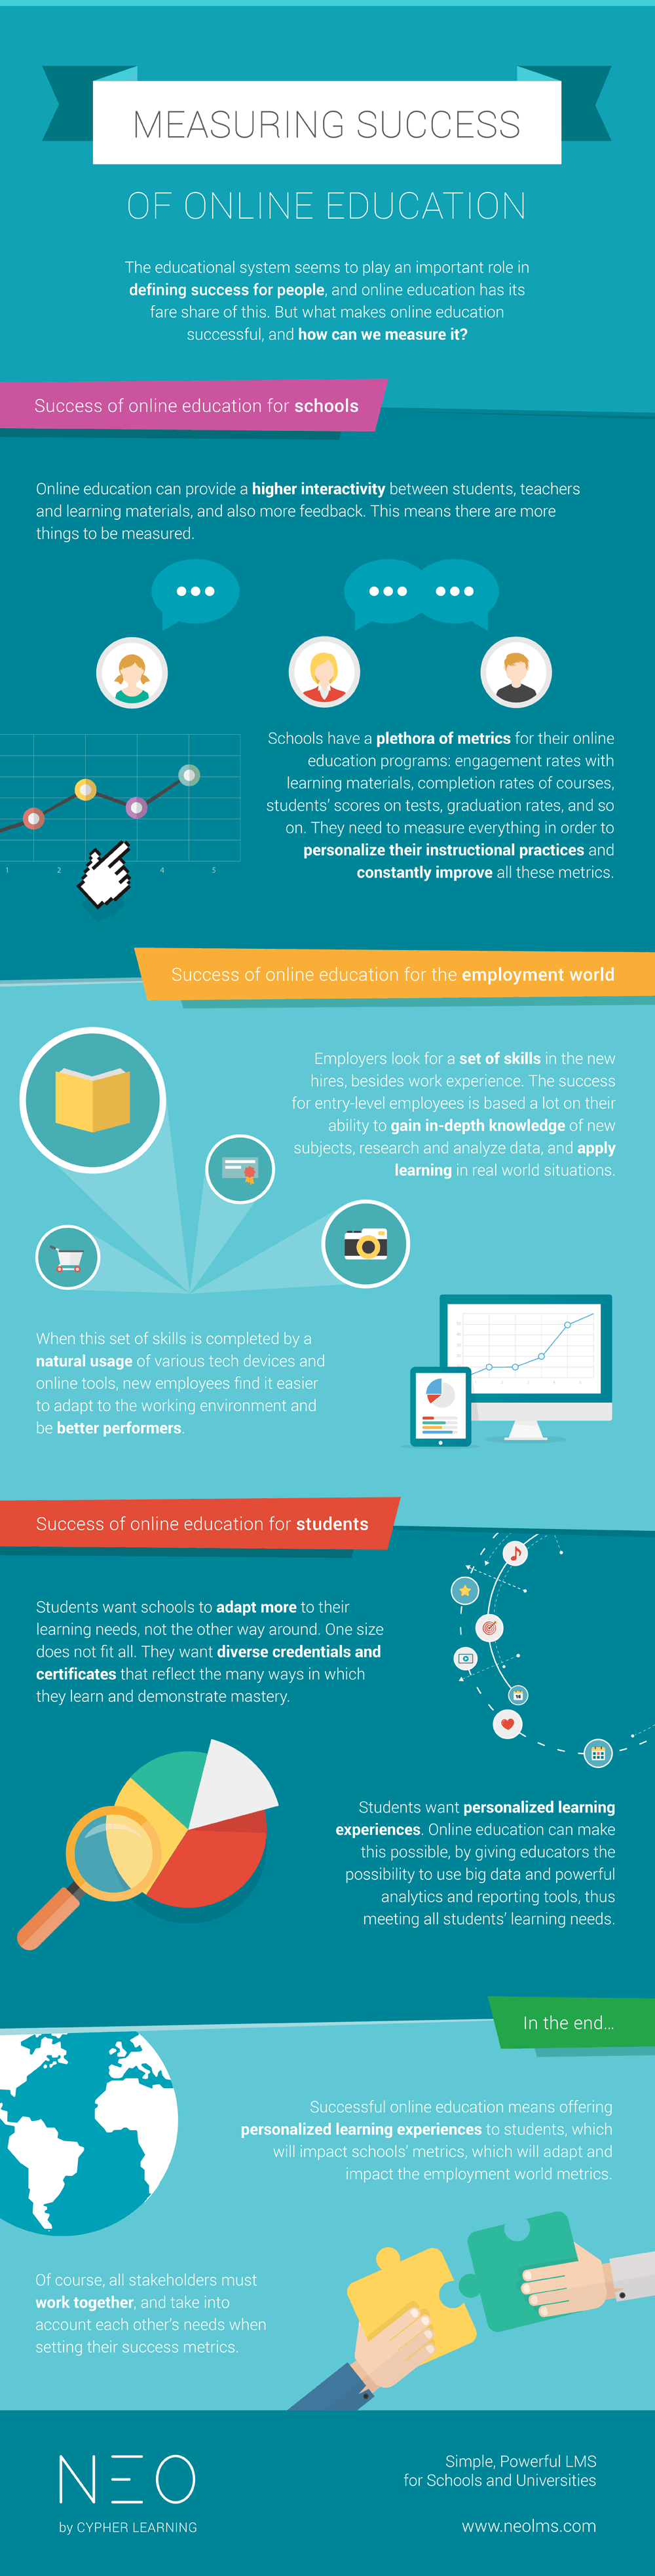 Measuring Success of Online Education Infographic